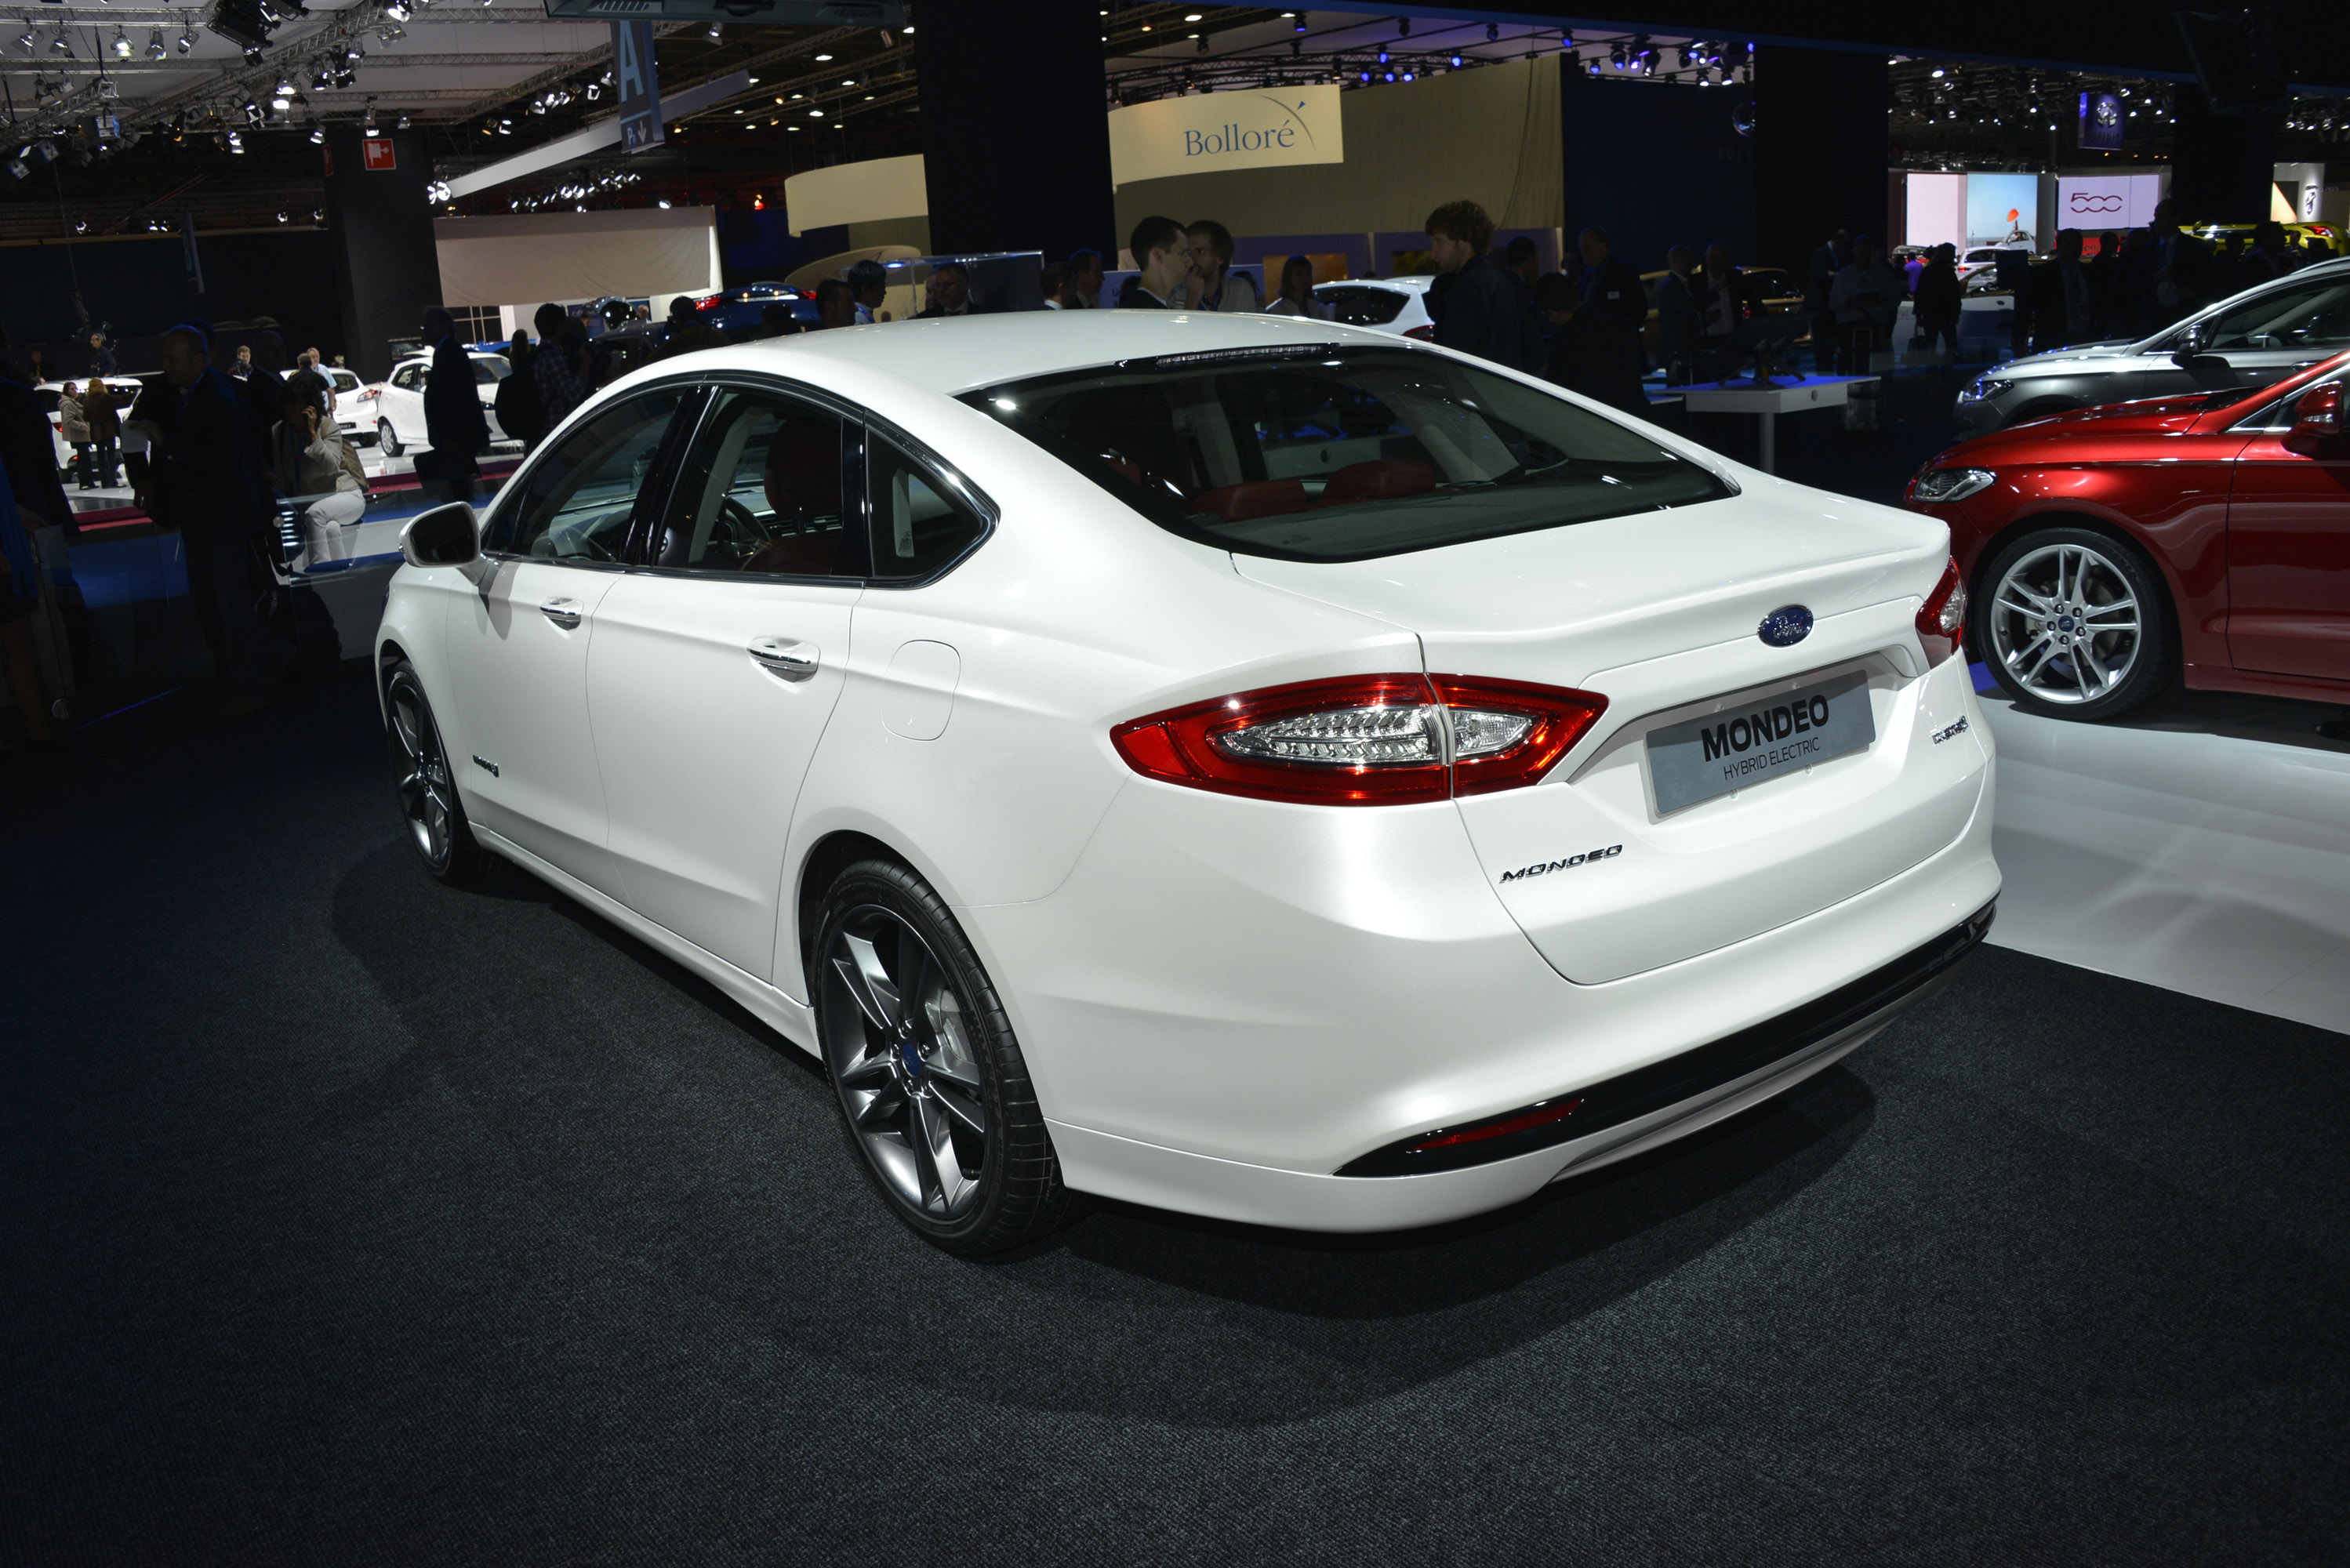 Ford Mondeo Hybrid Electric Paris 2012 - Picture 75007